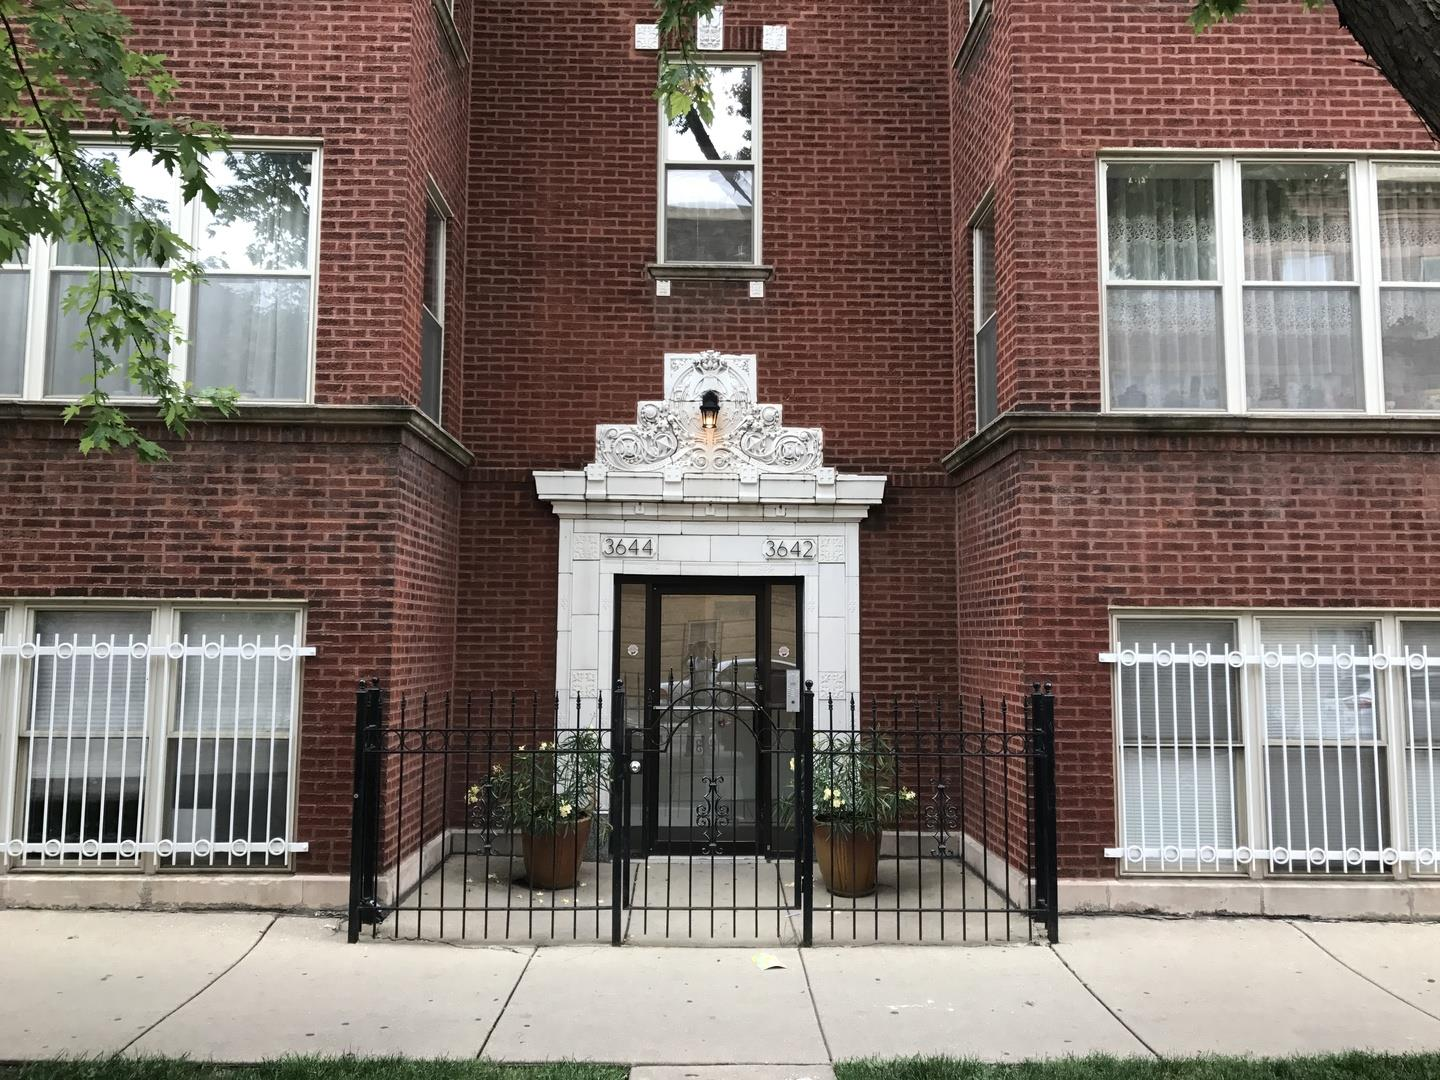 3642 W Leland Avenue #402, Chicago, IL 60625 - #: 10960584